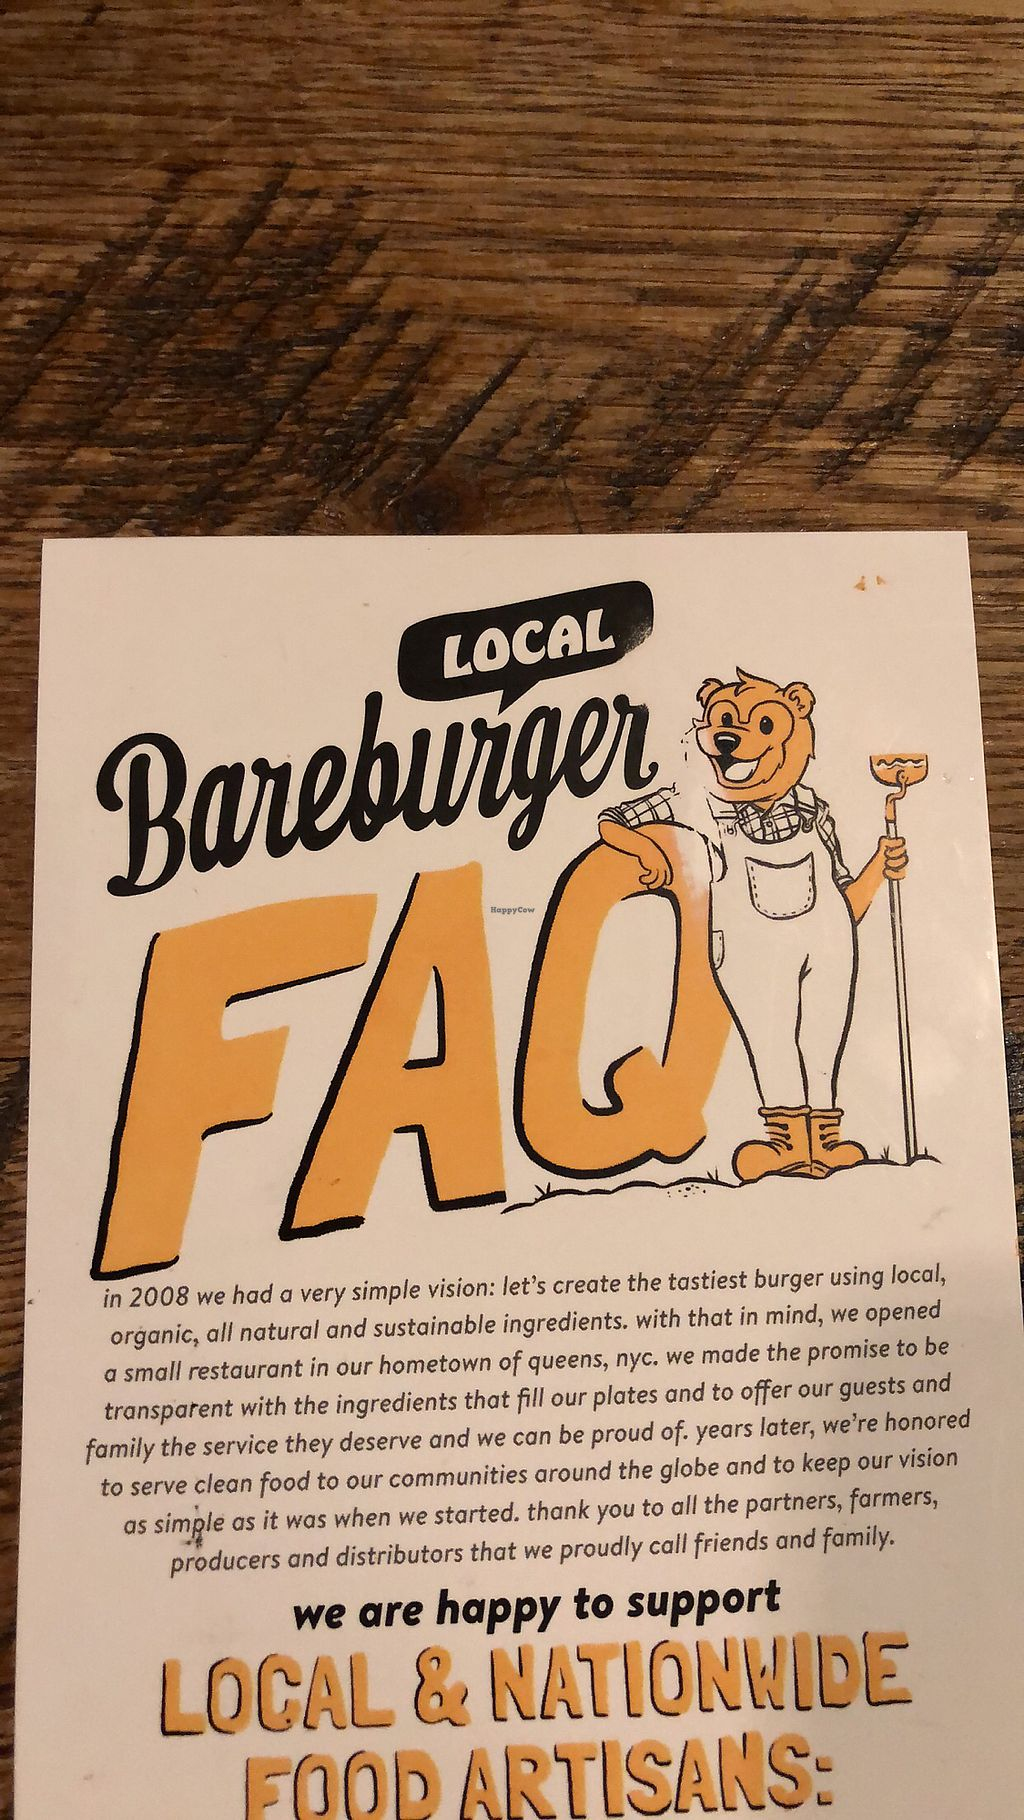 """Photo of Bareburger - Financial District  by <a href=""""/members/profile/Jadediana"""">Jadediana</a> <br/>Supports local and organic!  <br/> April 5, 2018  - <a href='/contact/abuse/image/55575/381247'>Report</a>"""